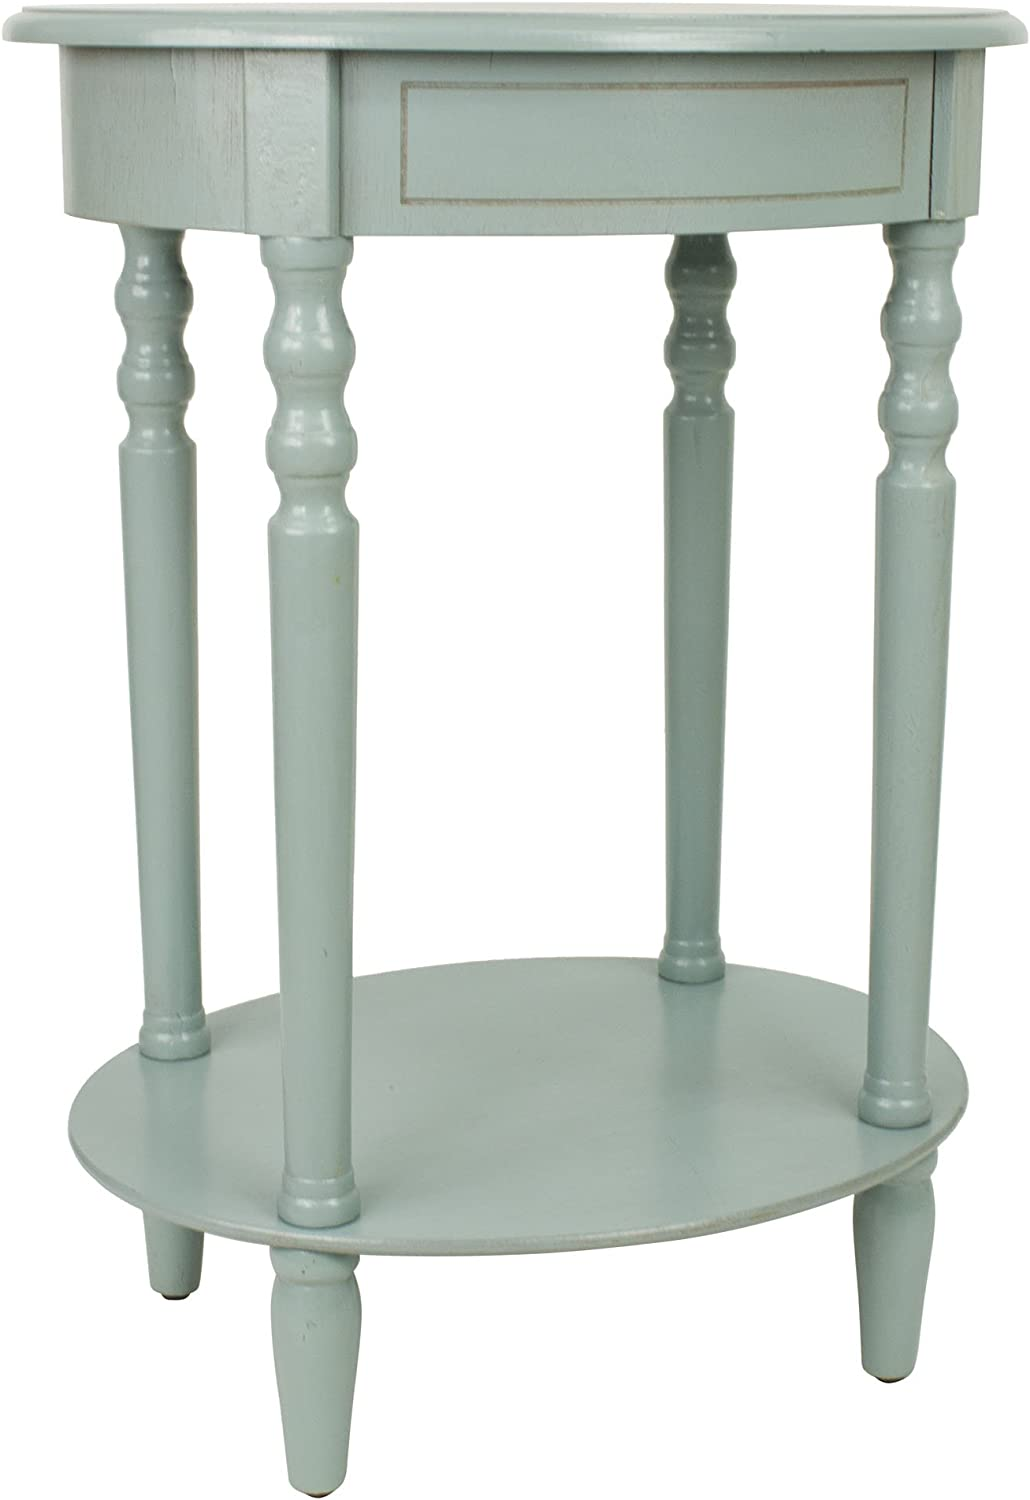 Décor Therapy FR1540 End Table, Antiqued Iced bluee